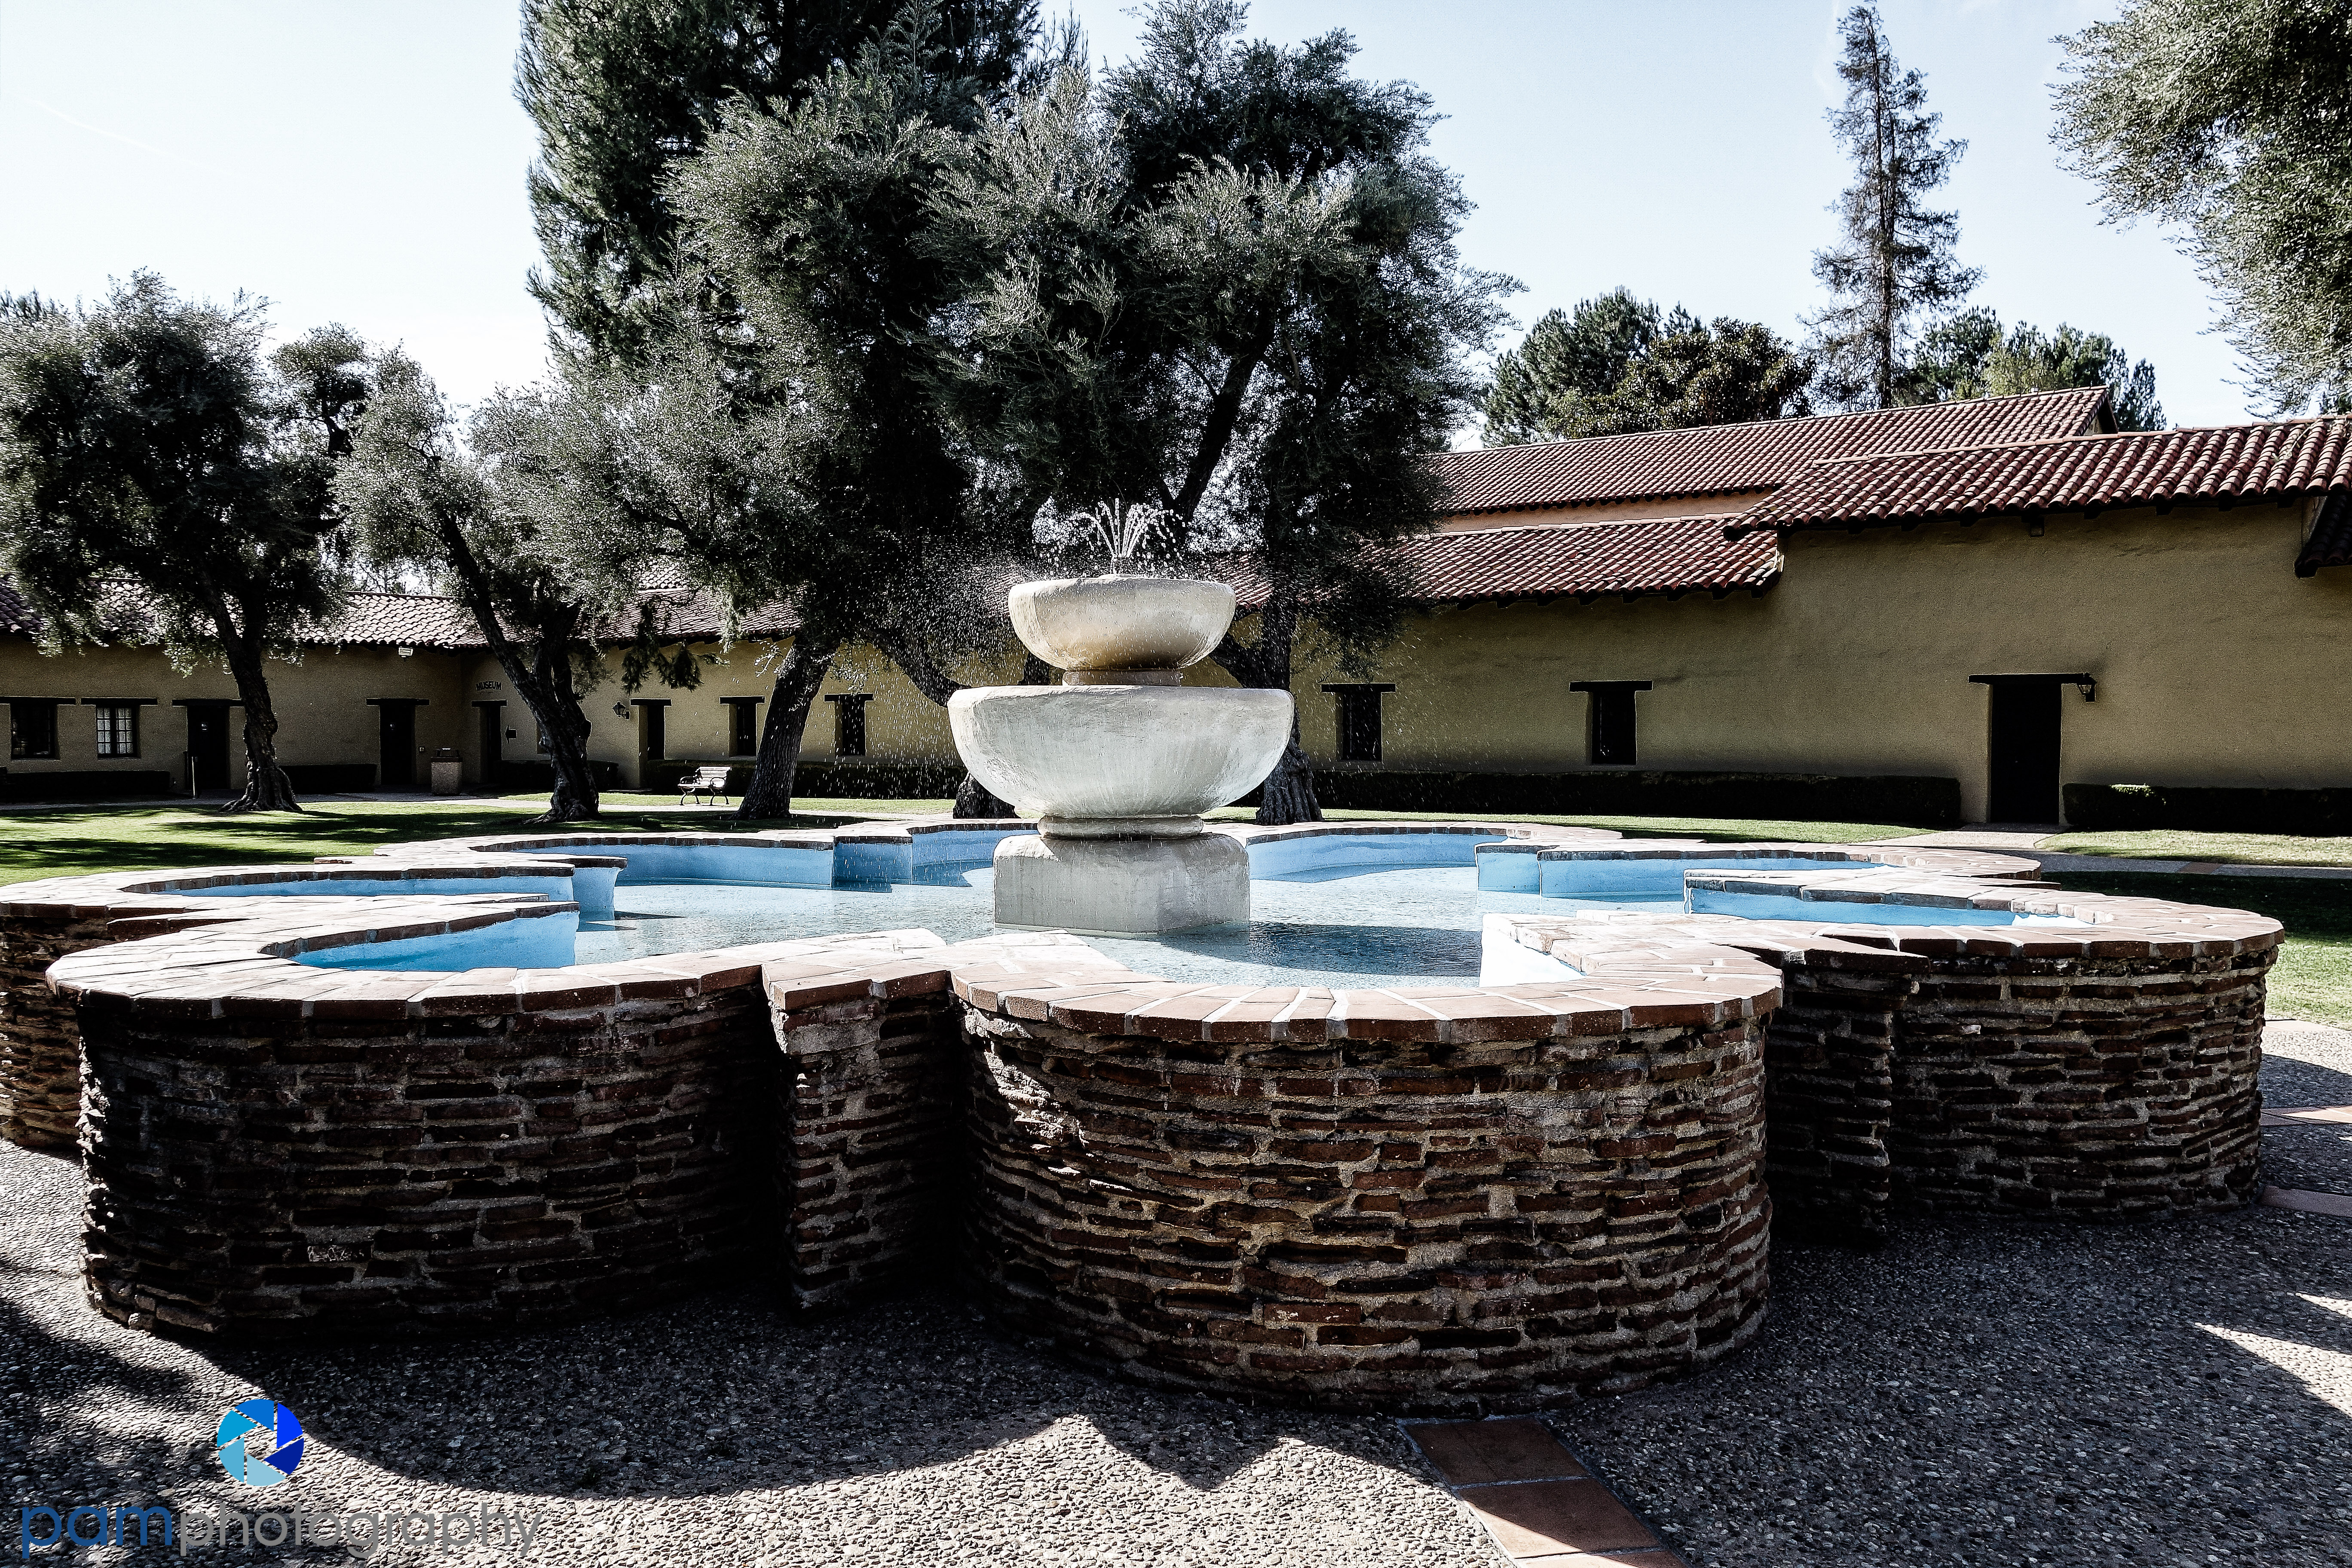 There is a huge courtyard with the requisite fountain